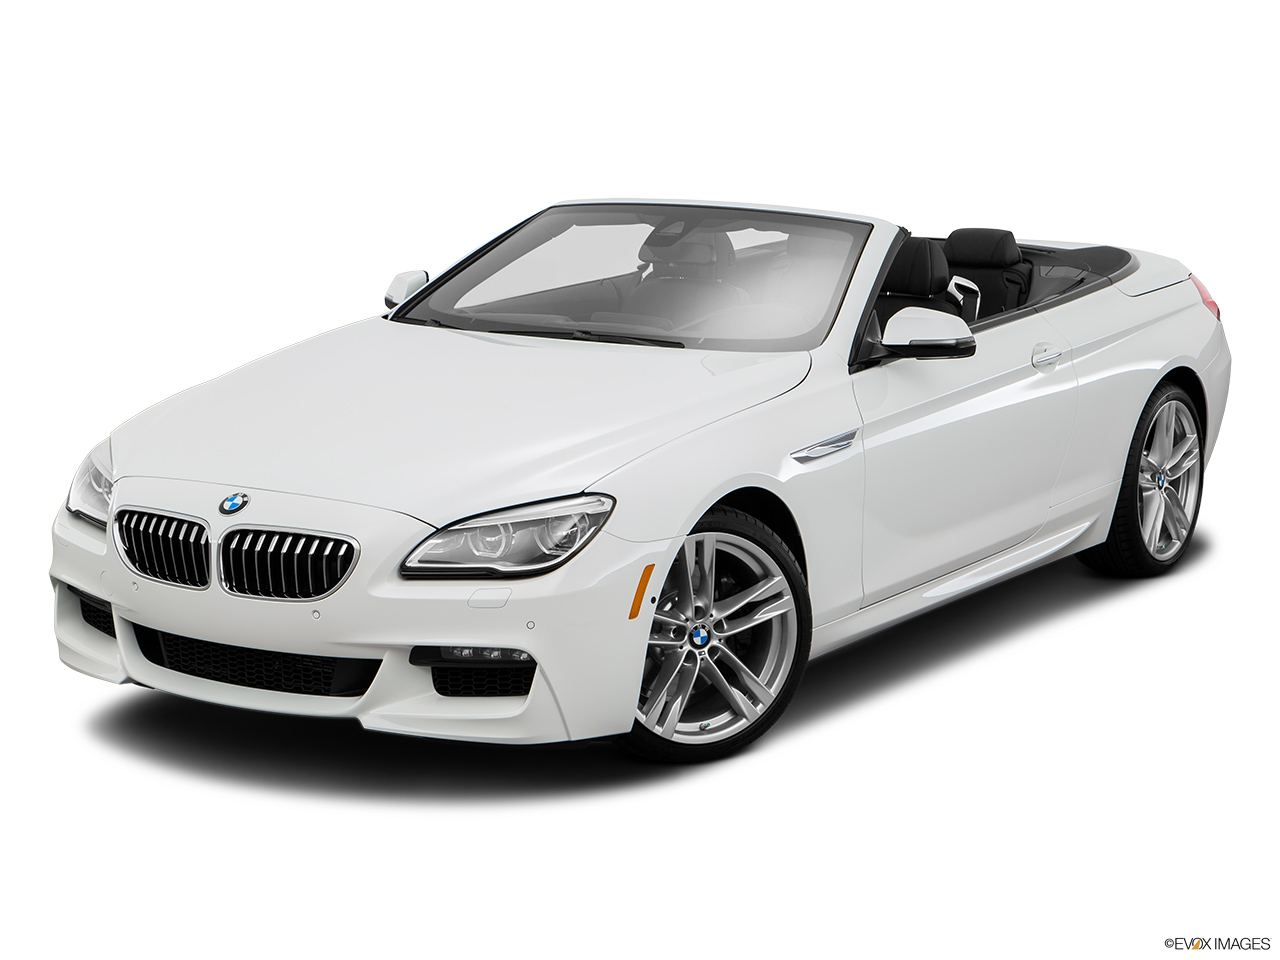 bmw 650i convertible price in india cars inspiration gallery. Black Bedroom Furniture Sets. Home Design Ideas